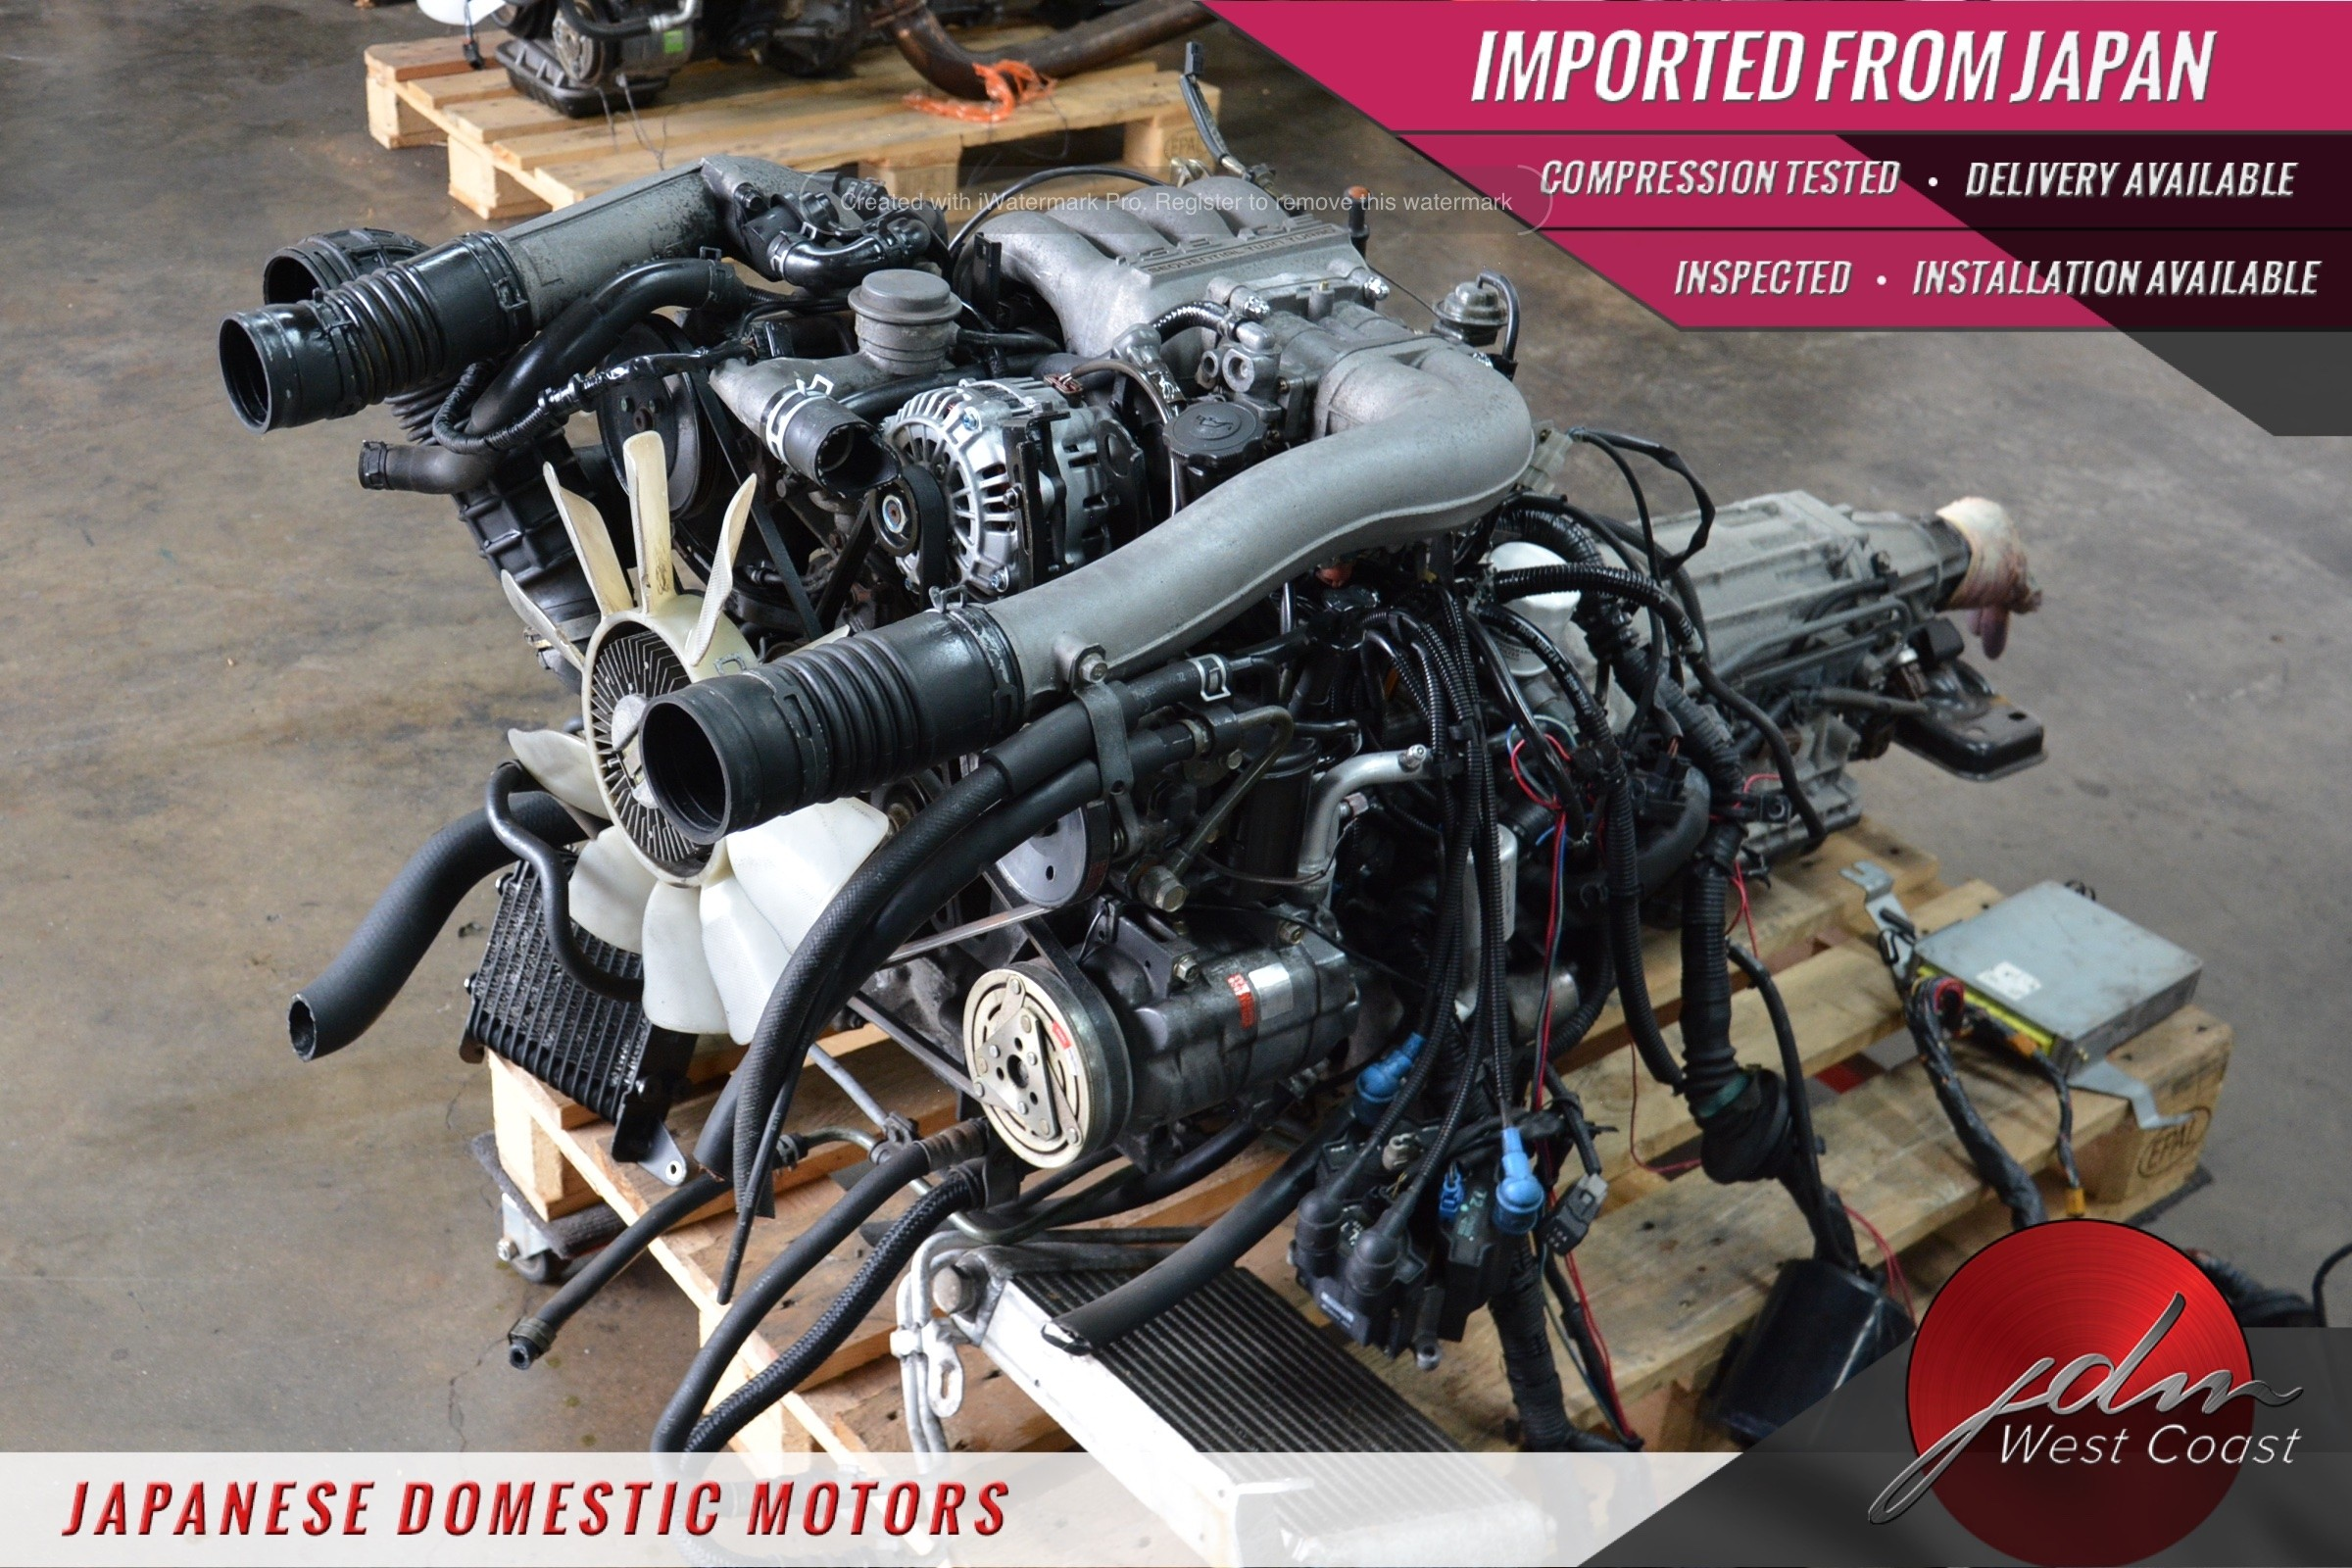 Jdm Mazda Rx-7 Engine 13B 1 3L Twin-Turbo FD3S 93-95 Rotary 5spd MT